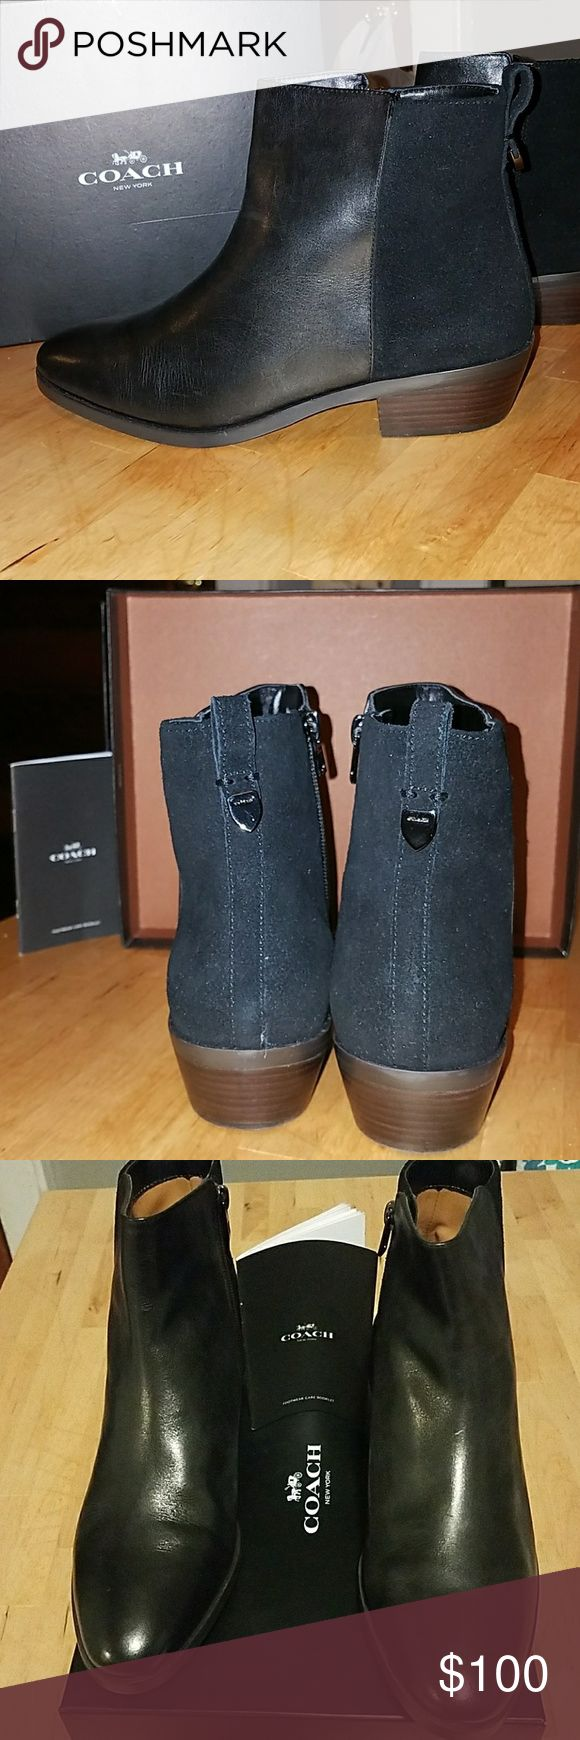 Brand New! COACH Leather Booties Coach shoes have a modern appeal and never compromise fit or quality. These boots are perfect for your busy lifestyle. The boots feature a small heel and are made of  leather and suede. They are brand new in box, never worn. Side zipper closure Coach Shoes Ankle Boots & Booties